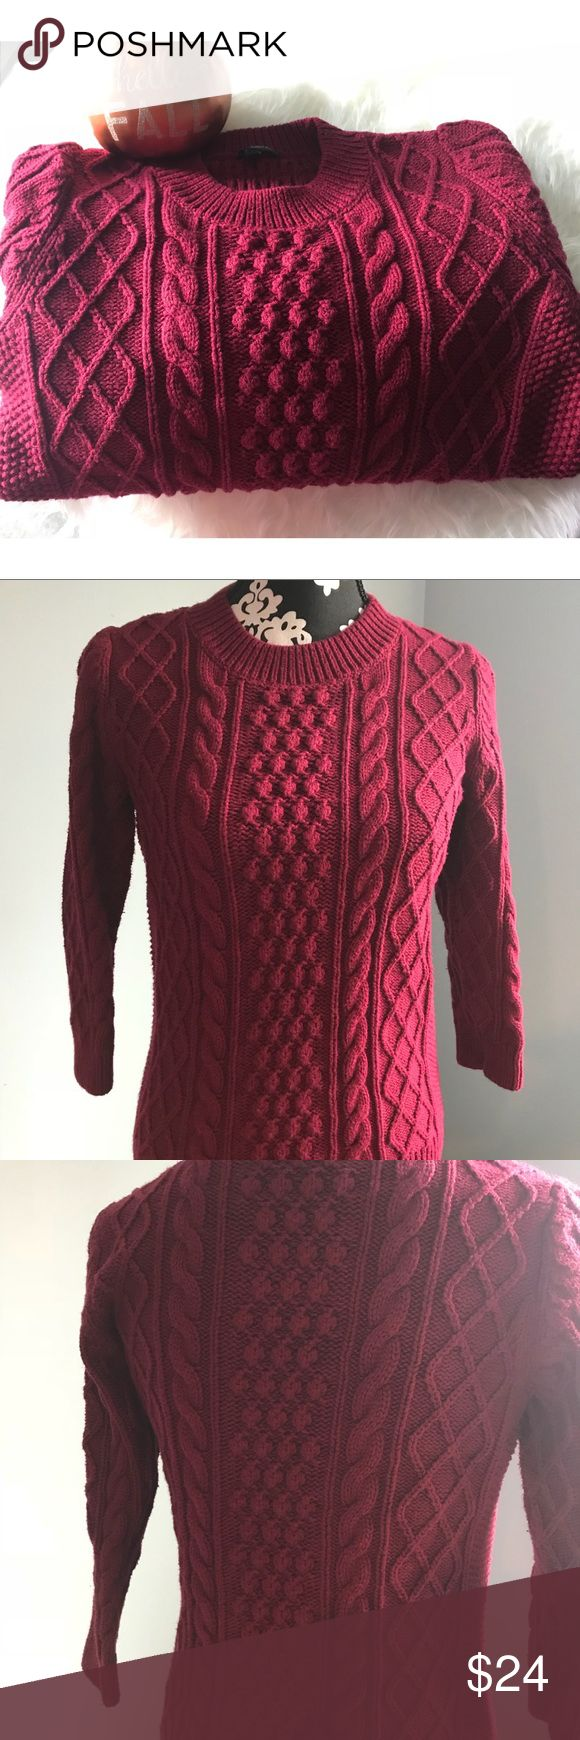 "Talbots Medium Petite Sweater Size MP. Great condition sweater. 55% cotton, 20% nylon, 15% wool, 10% polyester.  22"" length. 18"" chest, waist 16"" sleeve length 18"" Talbots Sweaters"